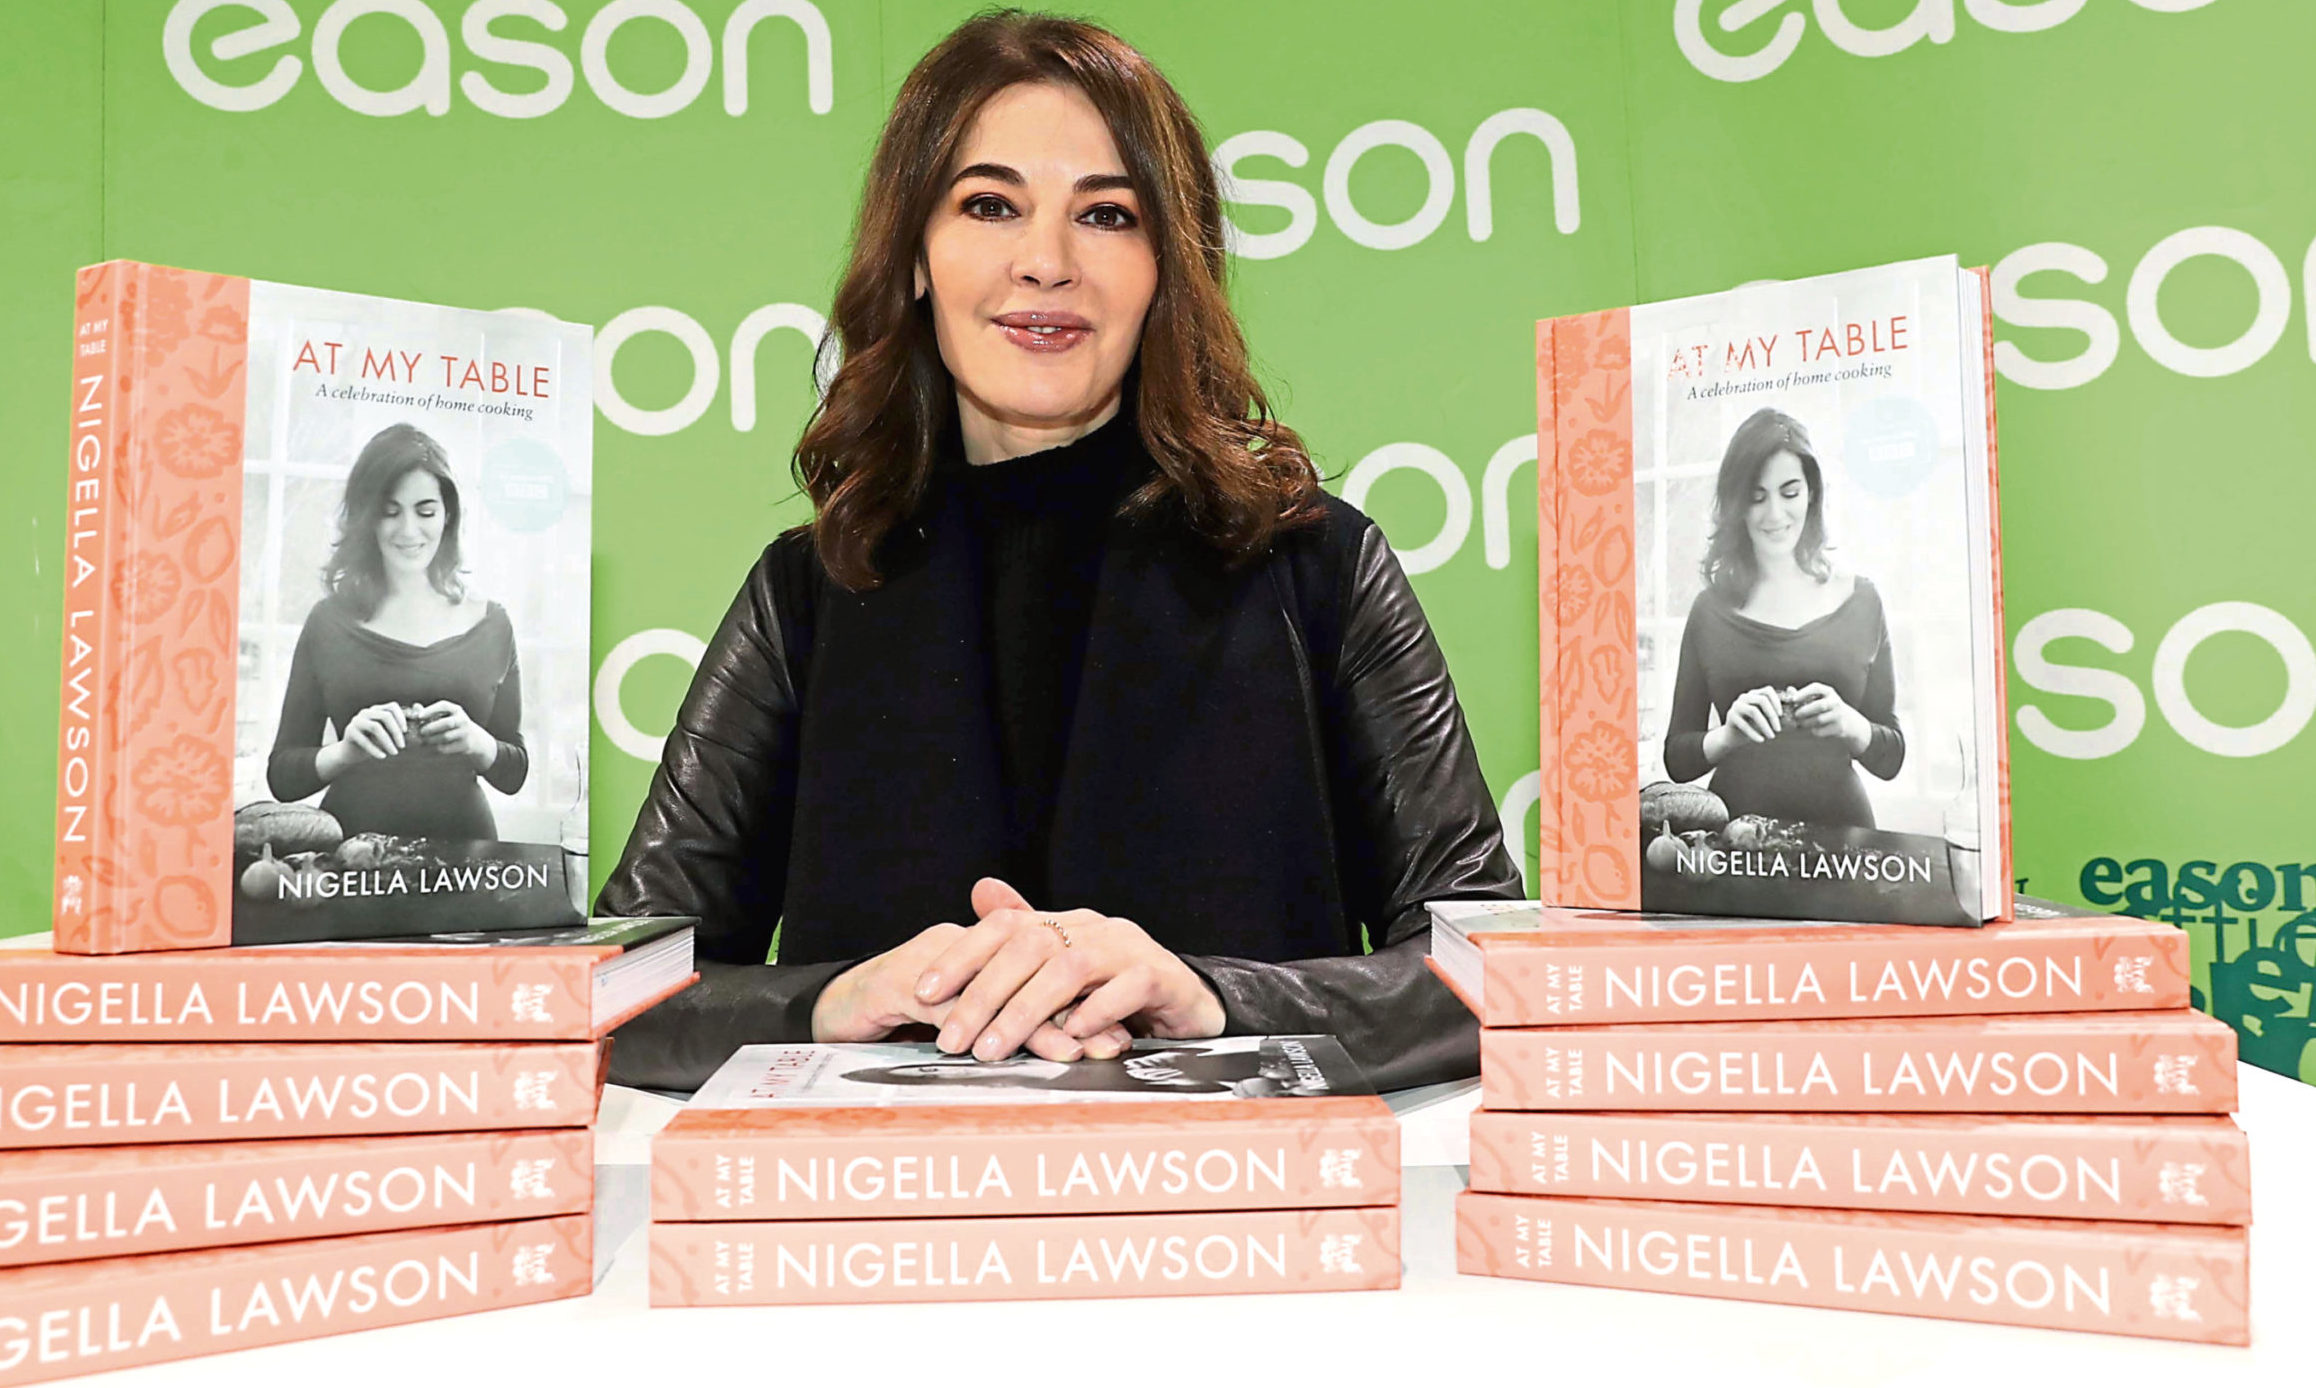 Nigella Lawson, cookery book author and TV presenter at the launch of her book  'At My Table, A Celebration of Home Cooking'. Photo: Shutterstock.